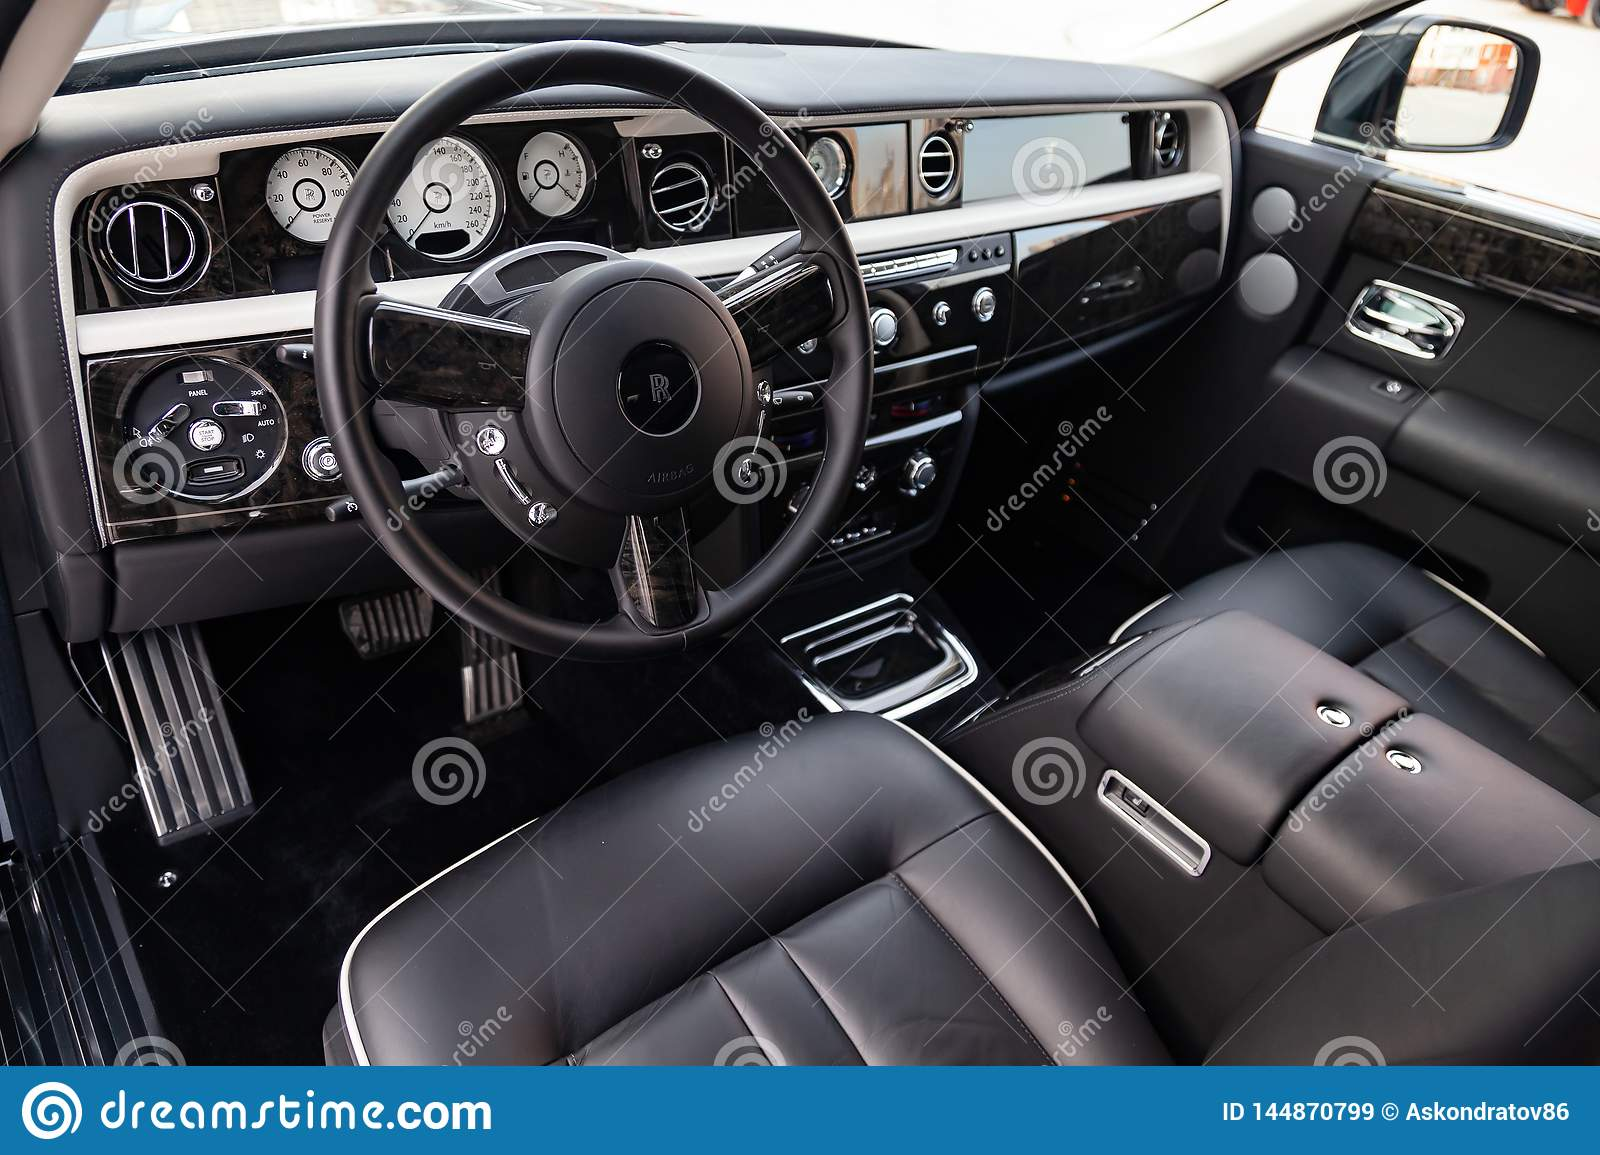 Interior View Of New A Very Expensive Rolls Royce Phantom Car A Long Black Limousine With Dashboard Steering Wheel Seats On Editorial Stock Image Image Of Rolls Dashboard 144870799